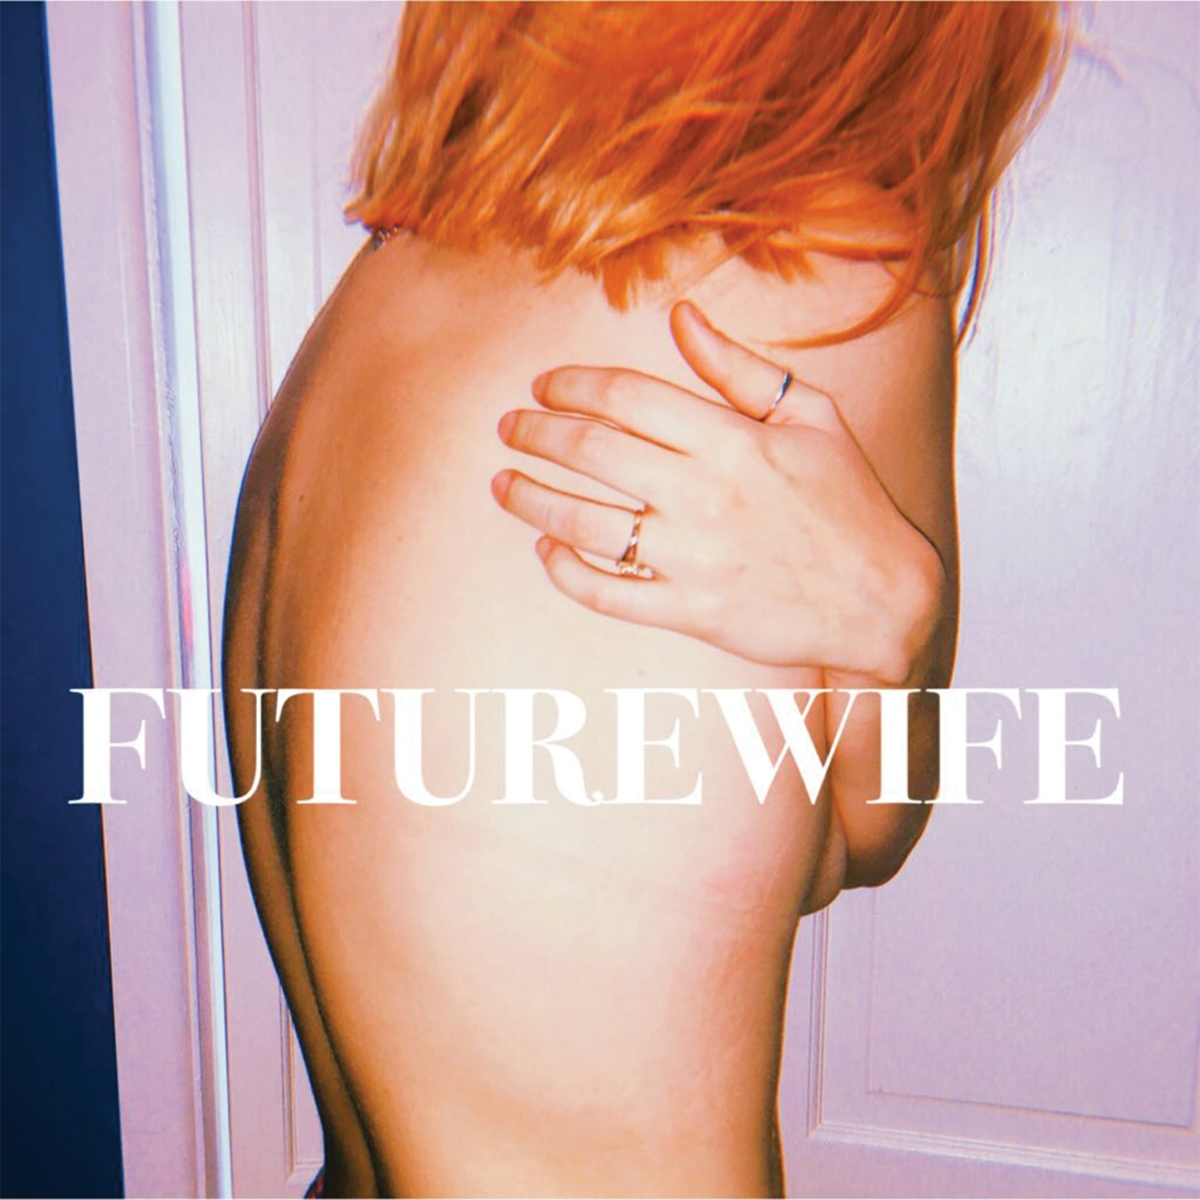 The future is bright for Futurewife ('Nicest Day' Debut EP Review)